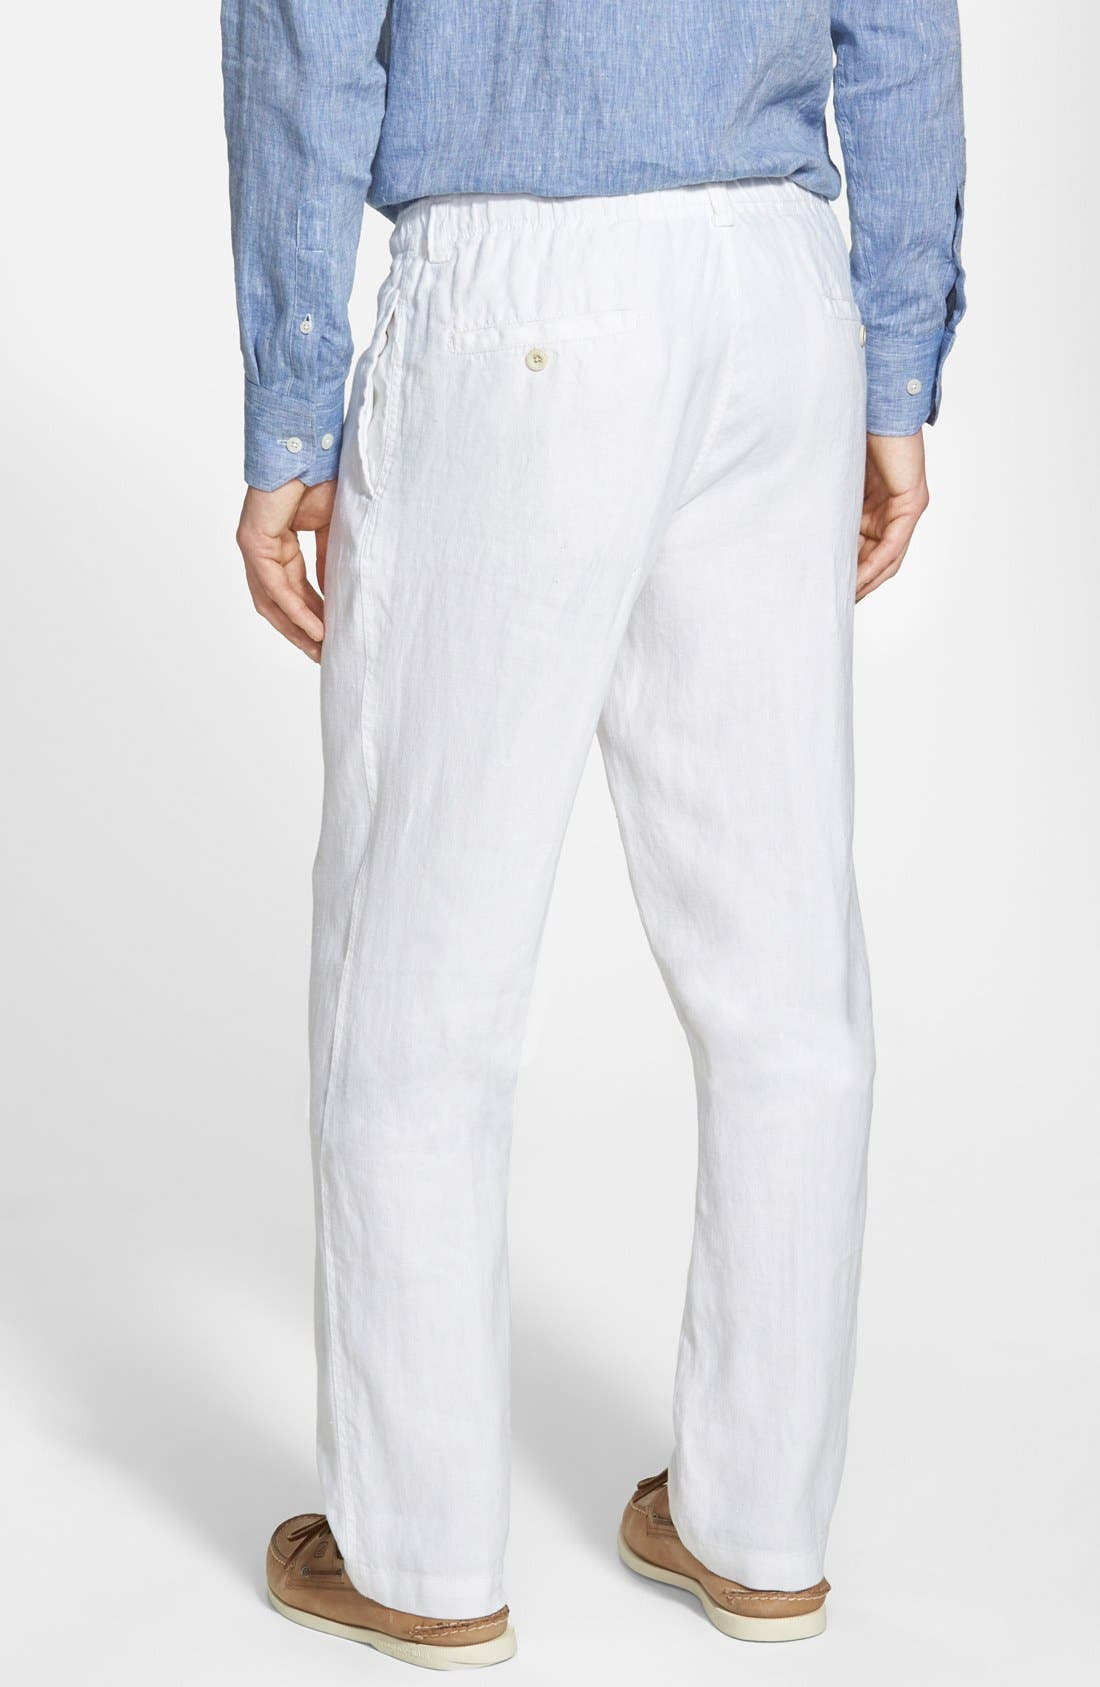 New Linen on the Beach Linen Pants,                             Alternate thumbnail 11, color,